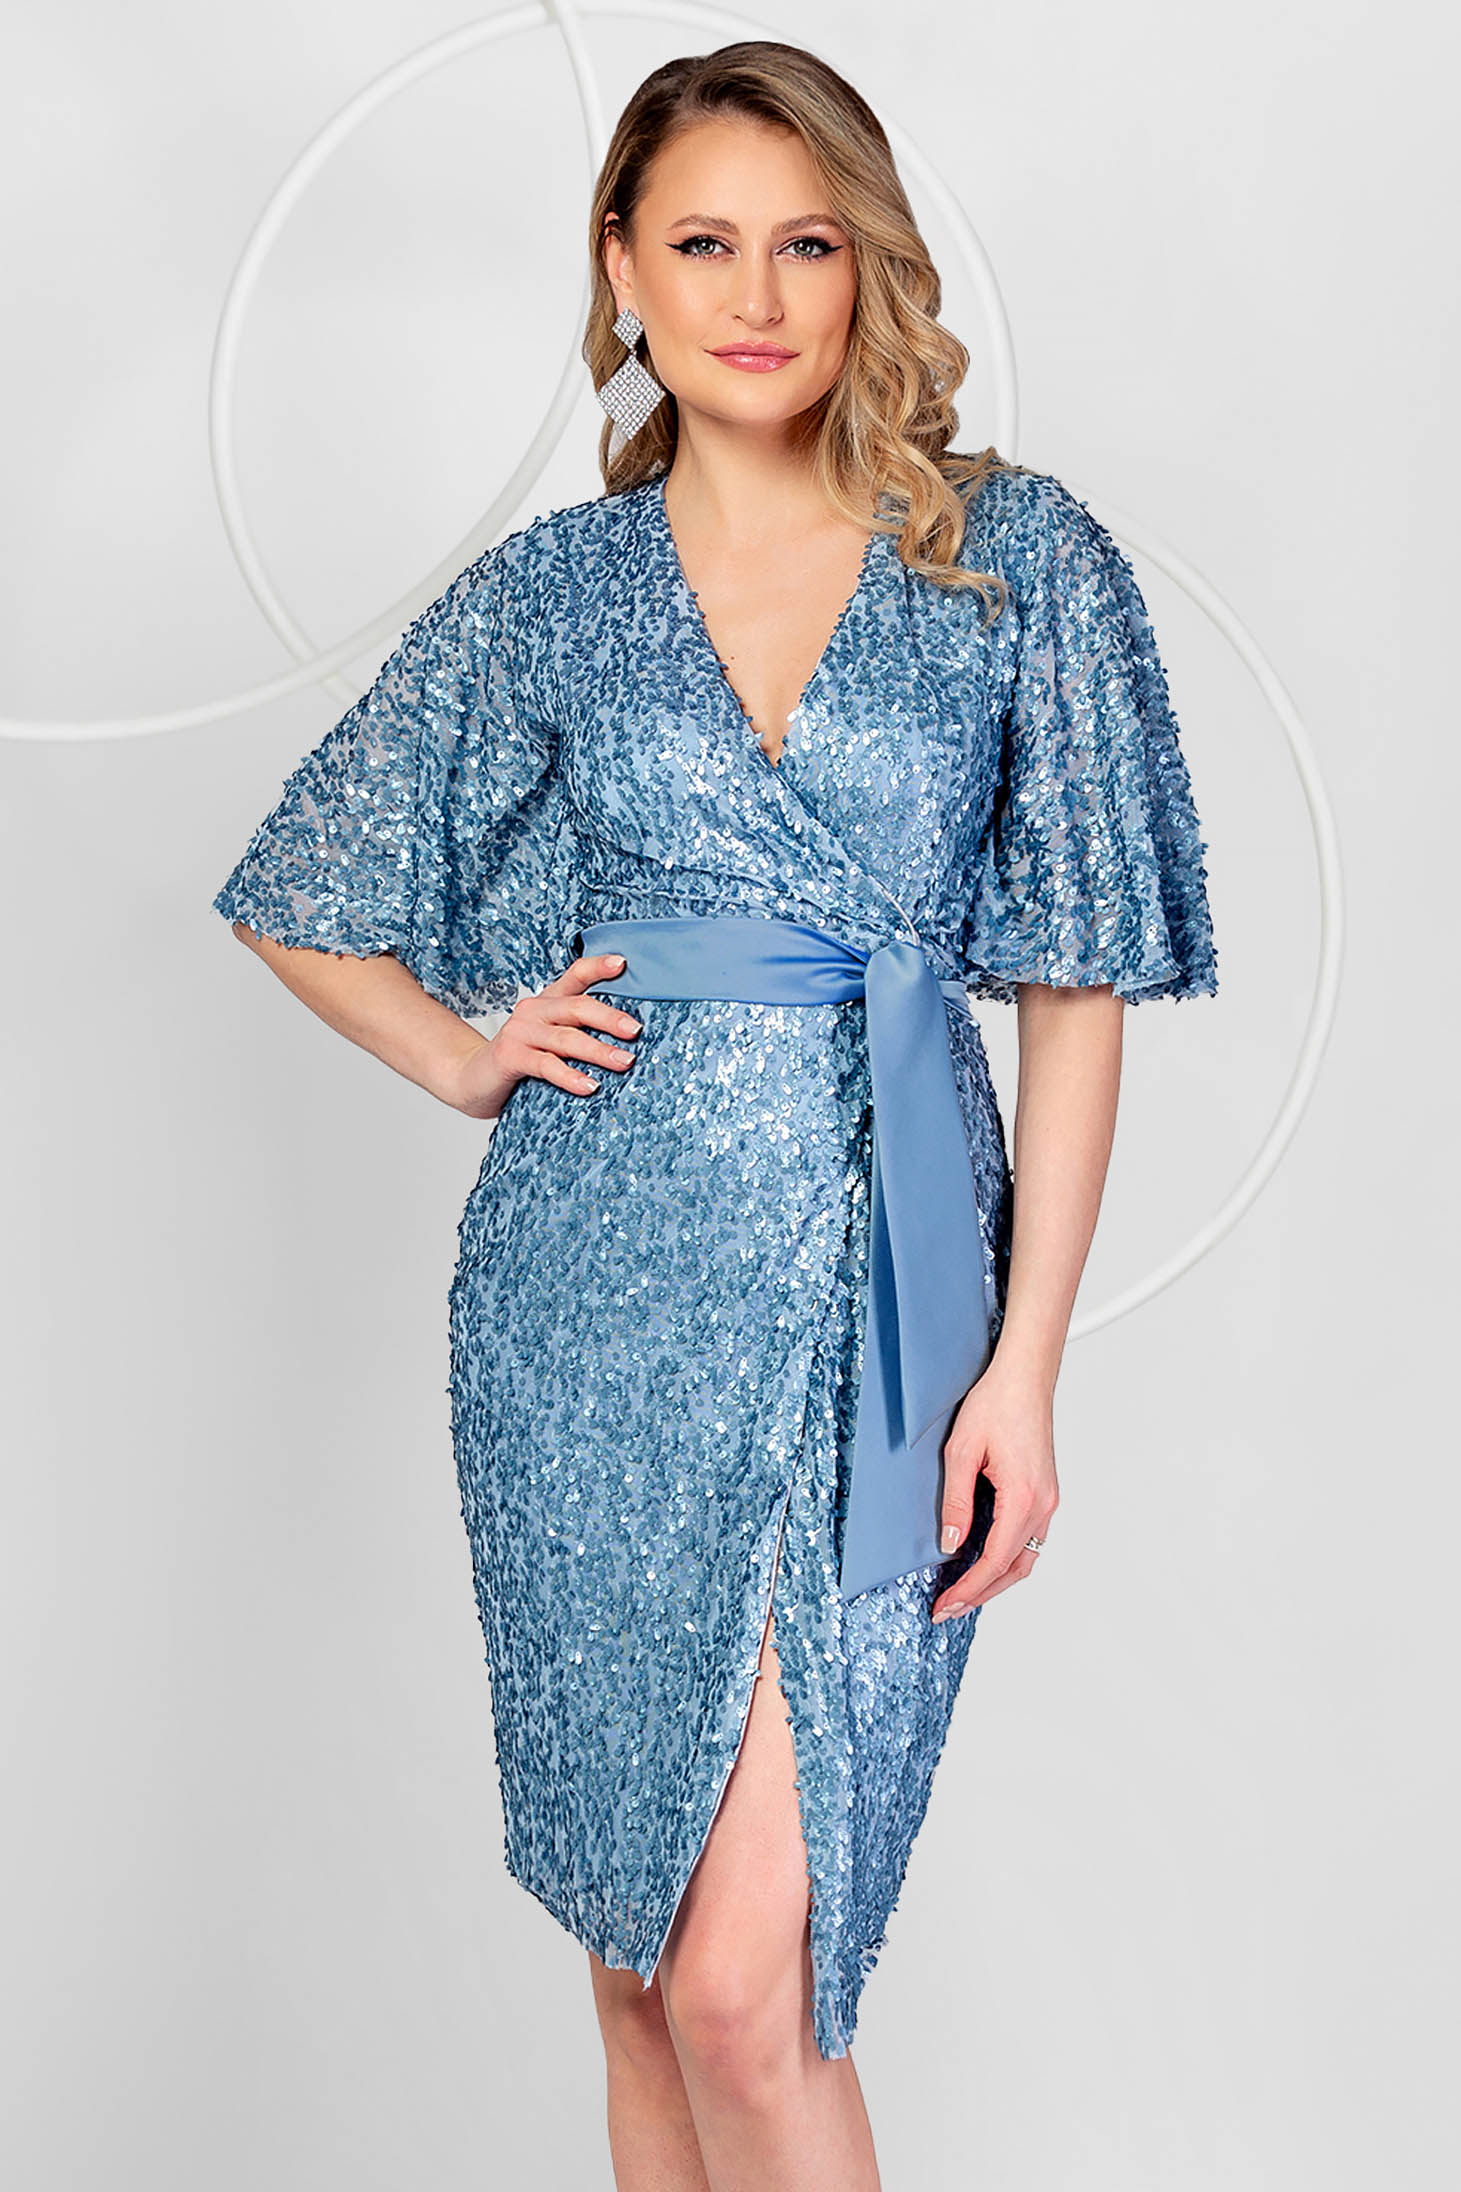 Blue dress occasional a-line with sequins with butterfly sleeves